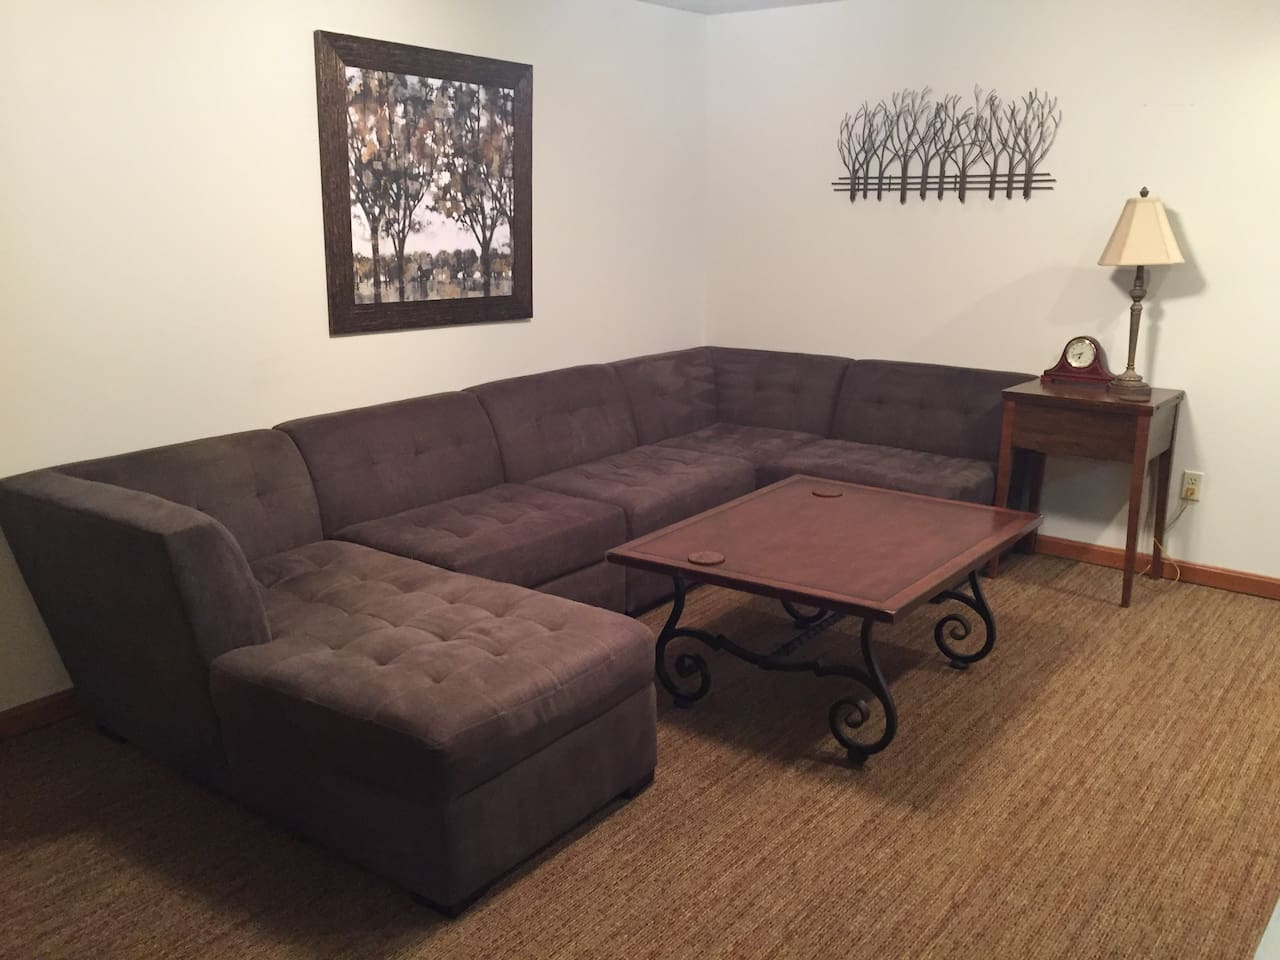 Large sofa that can be rearranged to make full size bed.